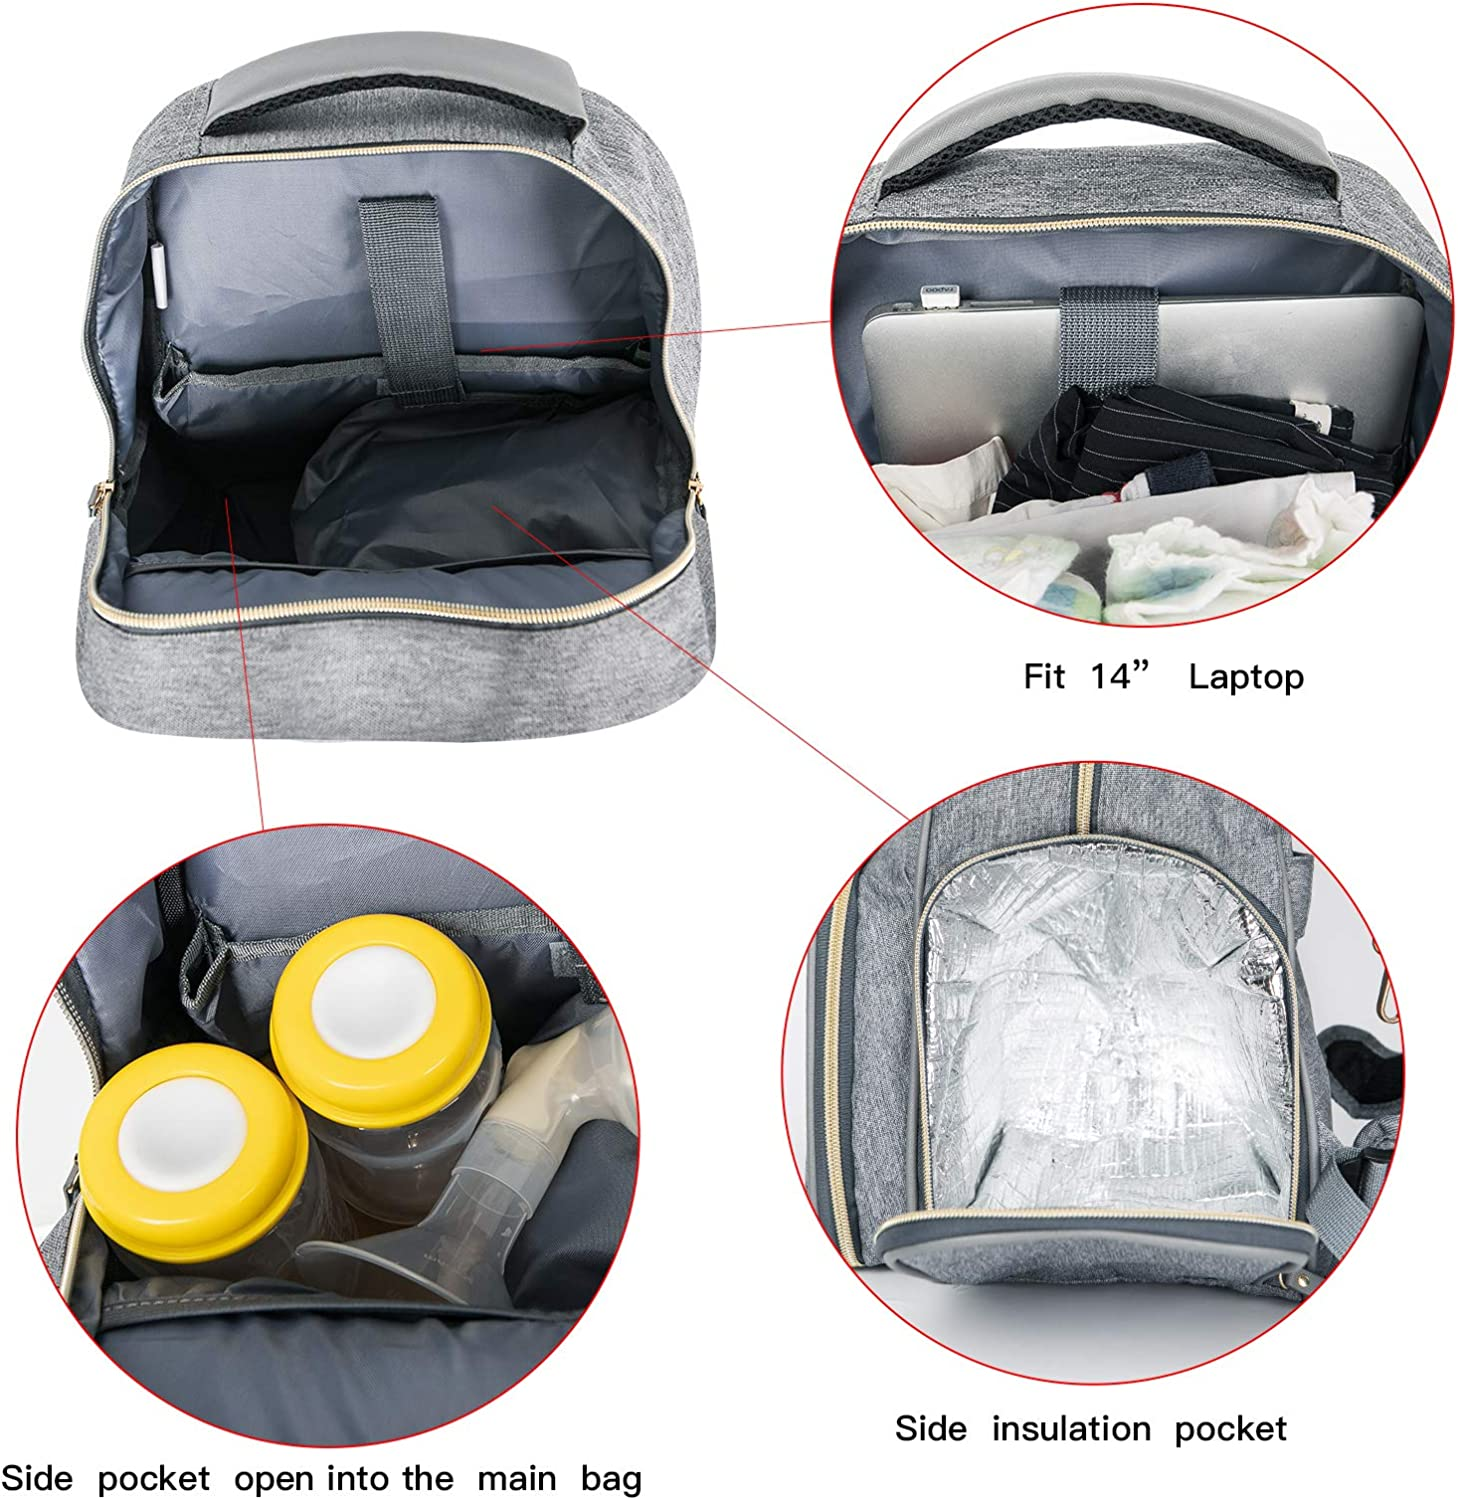 Breast Pump Backpack Diaper Bag - Multi-Function Mommy Outdoor Working Backpack with Insulation Pocket